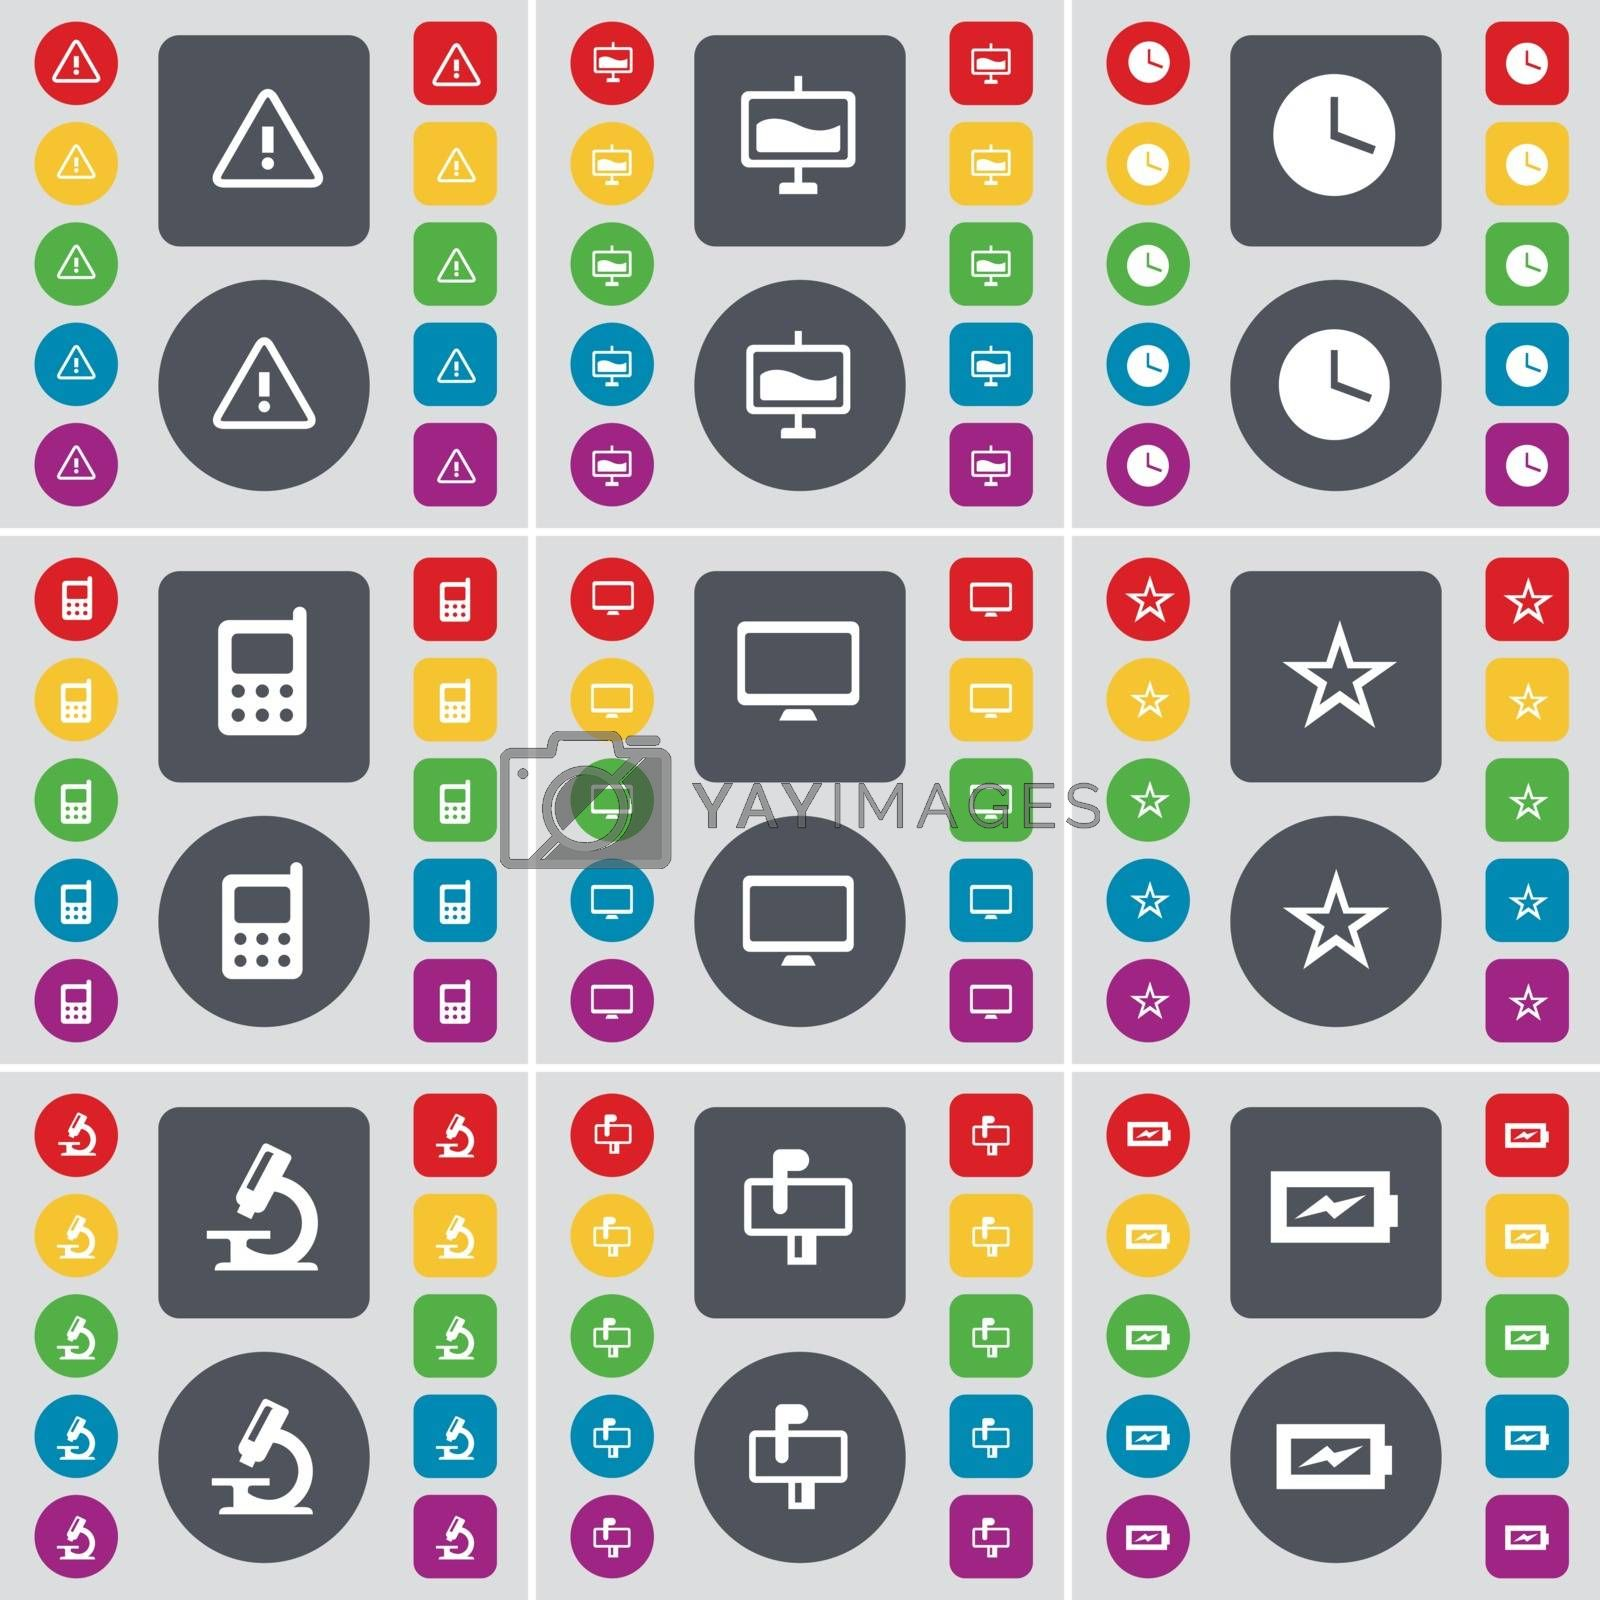 Royalty free image of Warning, Graph, Clock, Mobile phone, Monitor, Star, Microscope, Mailbox, Charging icon symbol. A large set of flat, colored buttons for your design. Vector by serhii_lohvyniuk